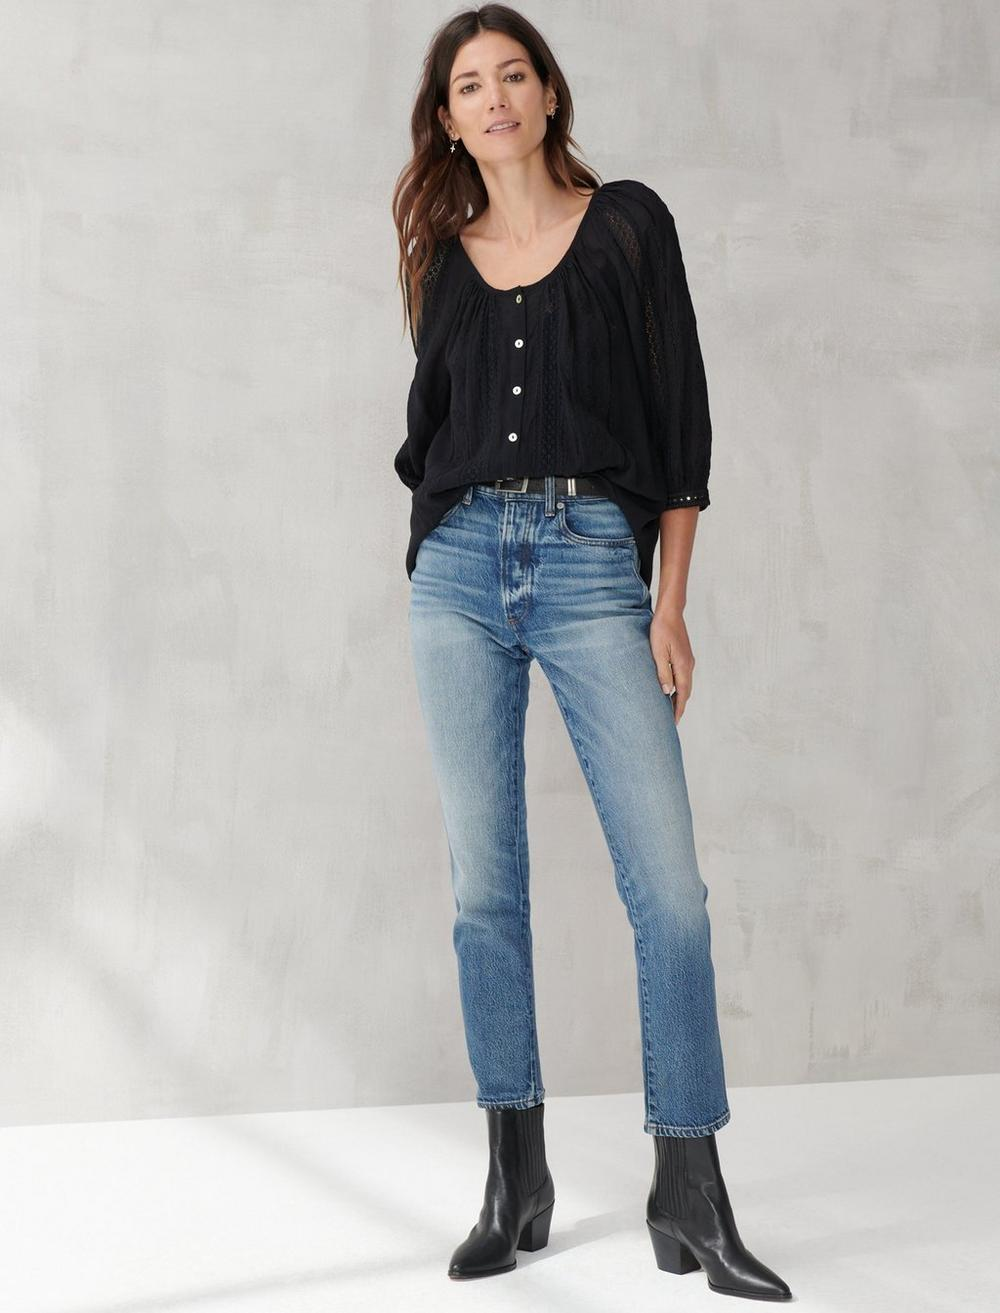 LACE INSET EMBROIDERED BUTTON TOP, image 2